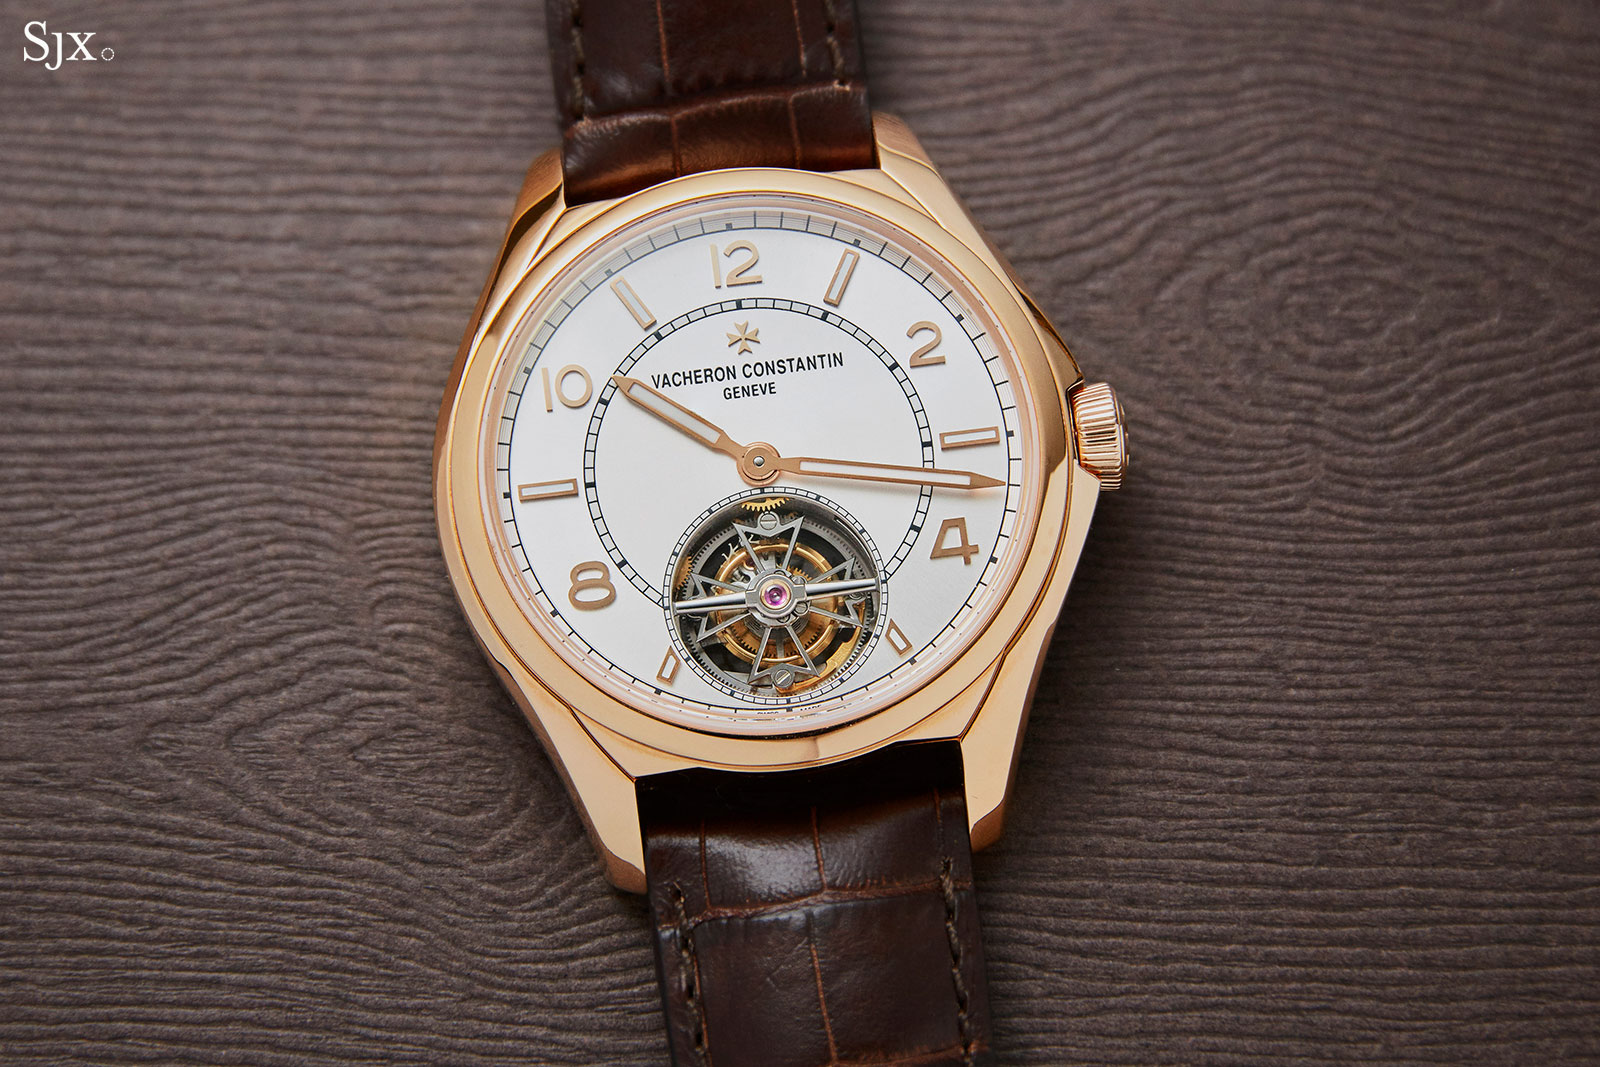 Vacheron Constantin FiftySix Tourbillon 2